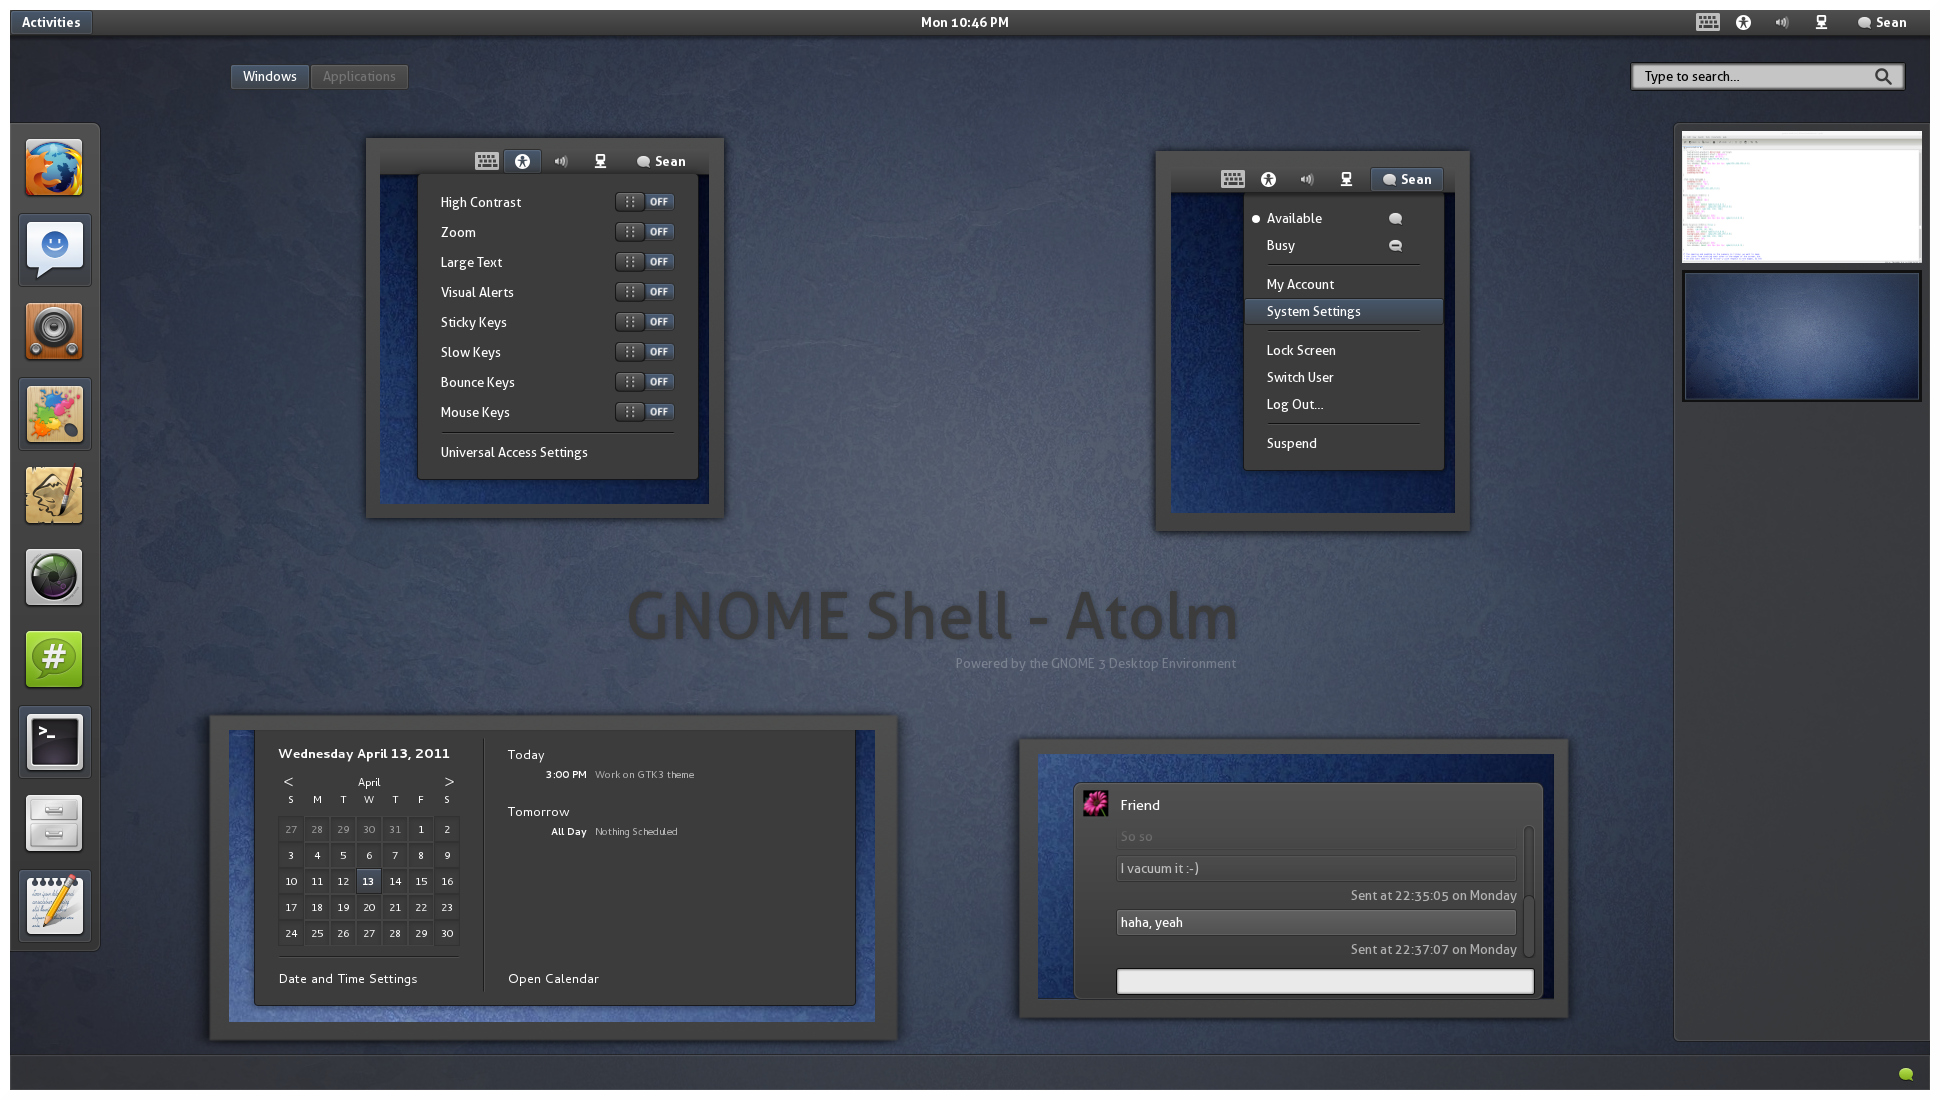 Atolm - Gnome Shell Theme